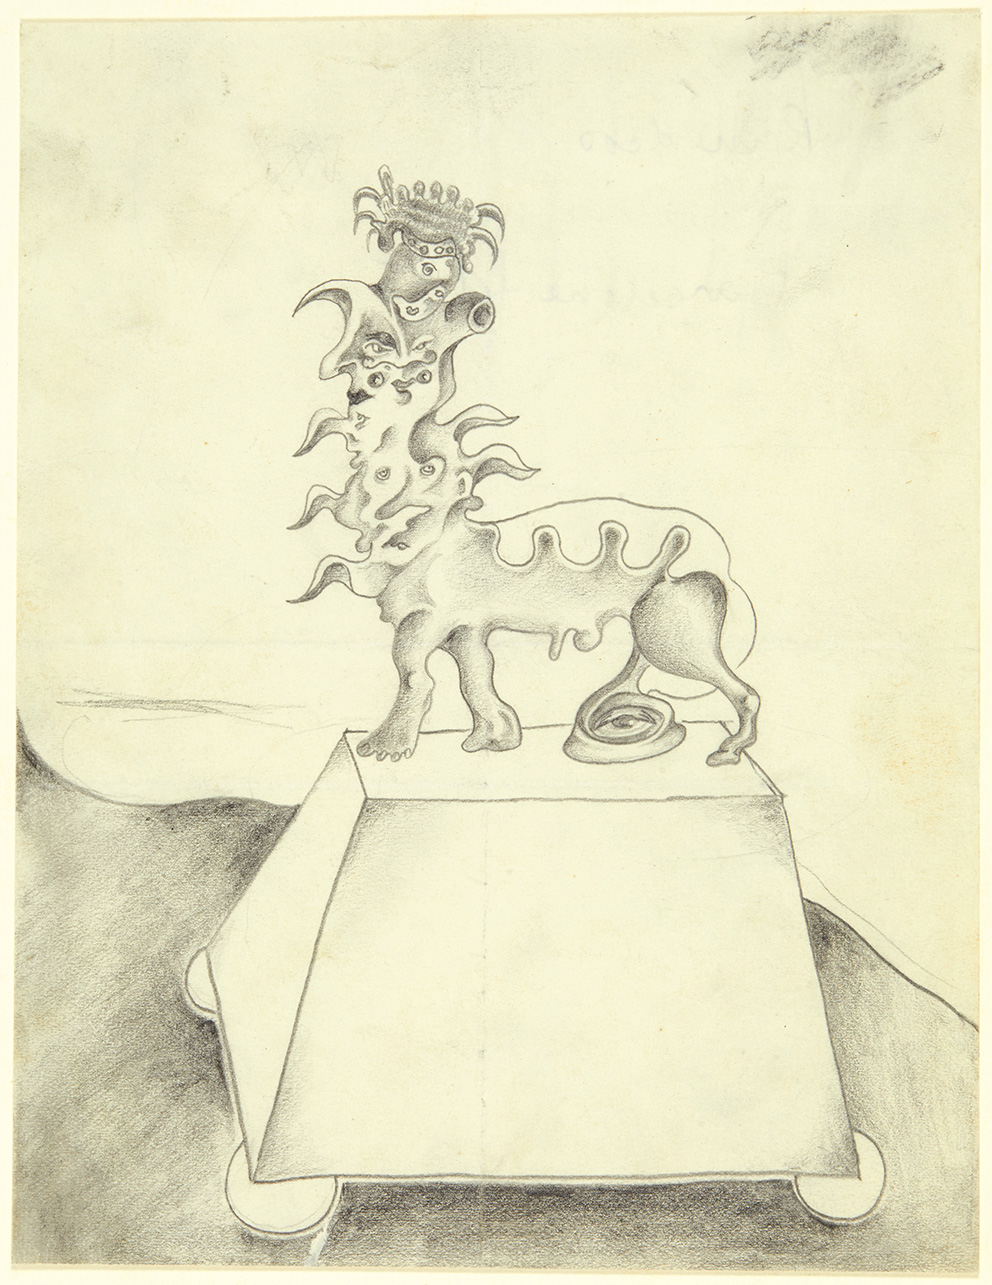 Remedios Varo Uranga (1908-1963), Monument to a visionary, Barcelona, 1935, drawing in black pencil and stump, 17.5 x 13.7 cm.Estimate: €5